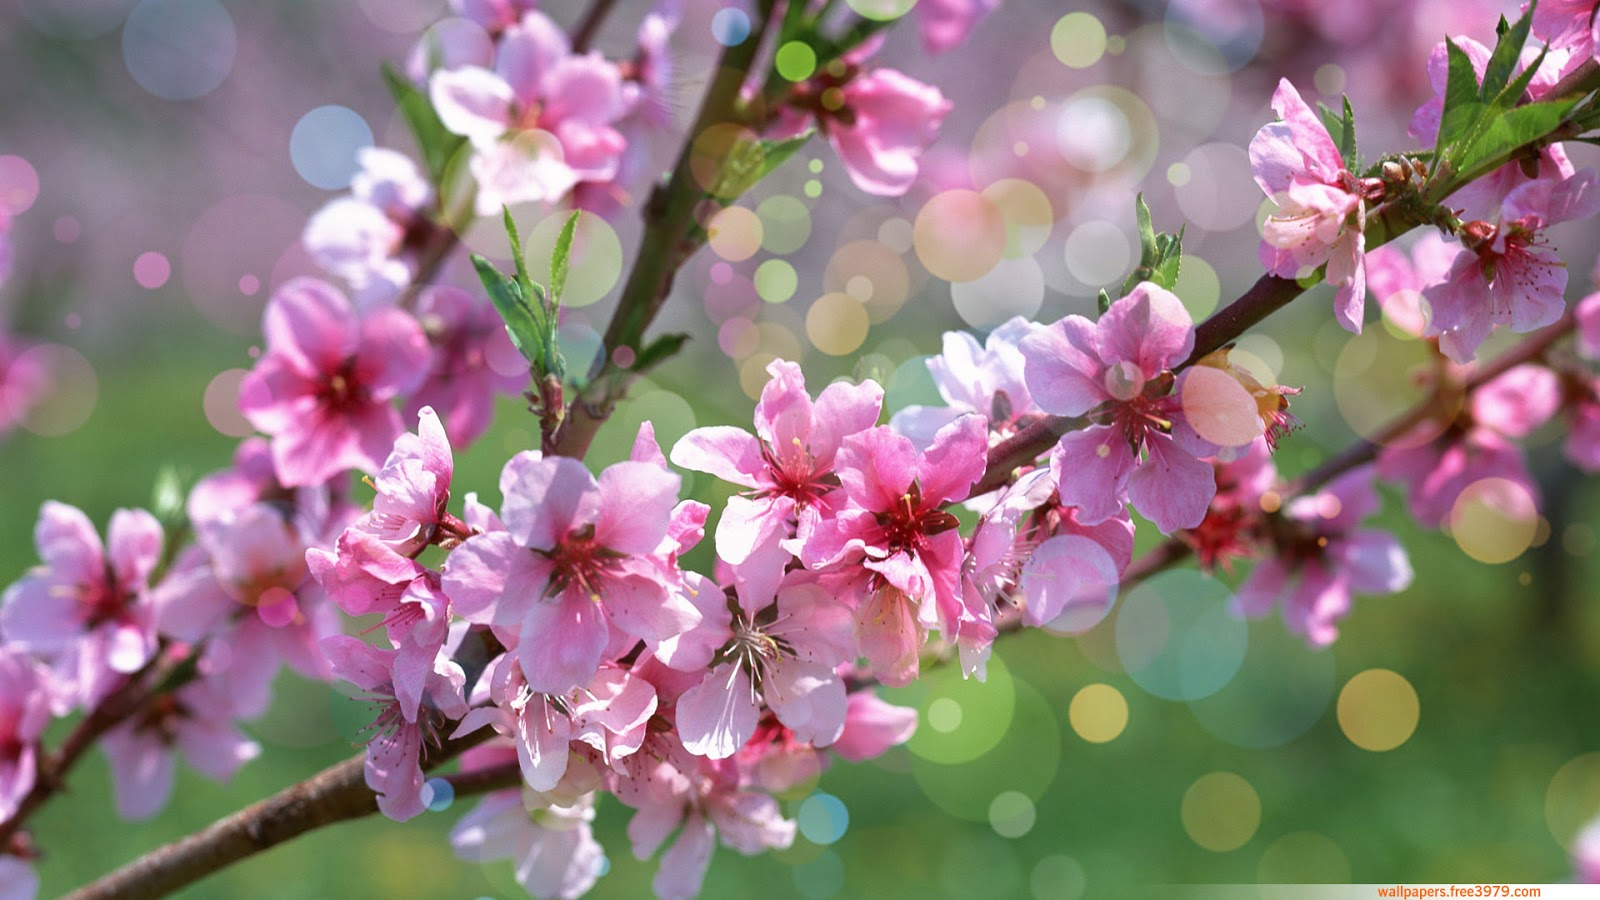 Wallpapers wallpaper 20 asian cherry blossom flower Cherry blossom pictures